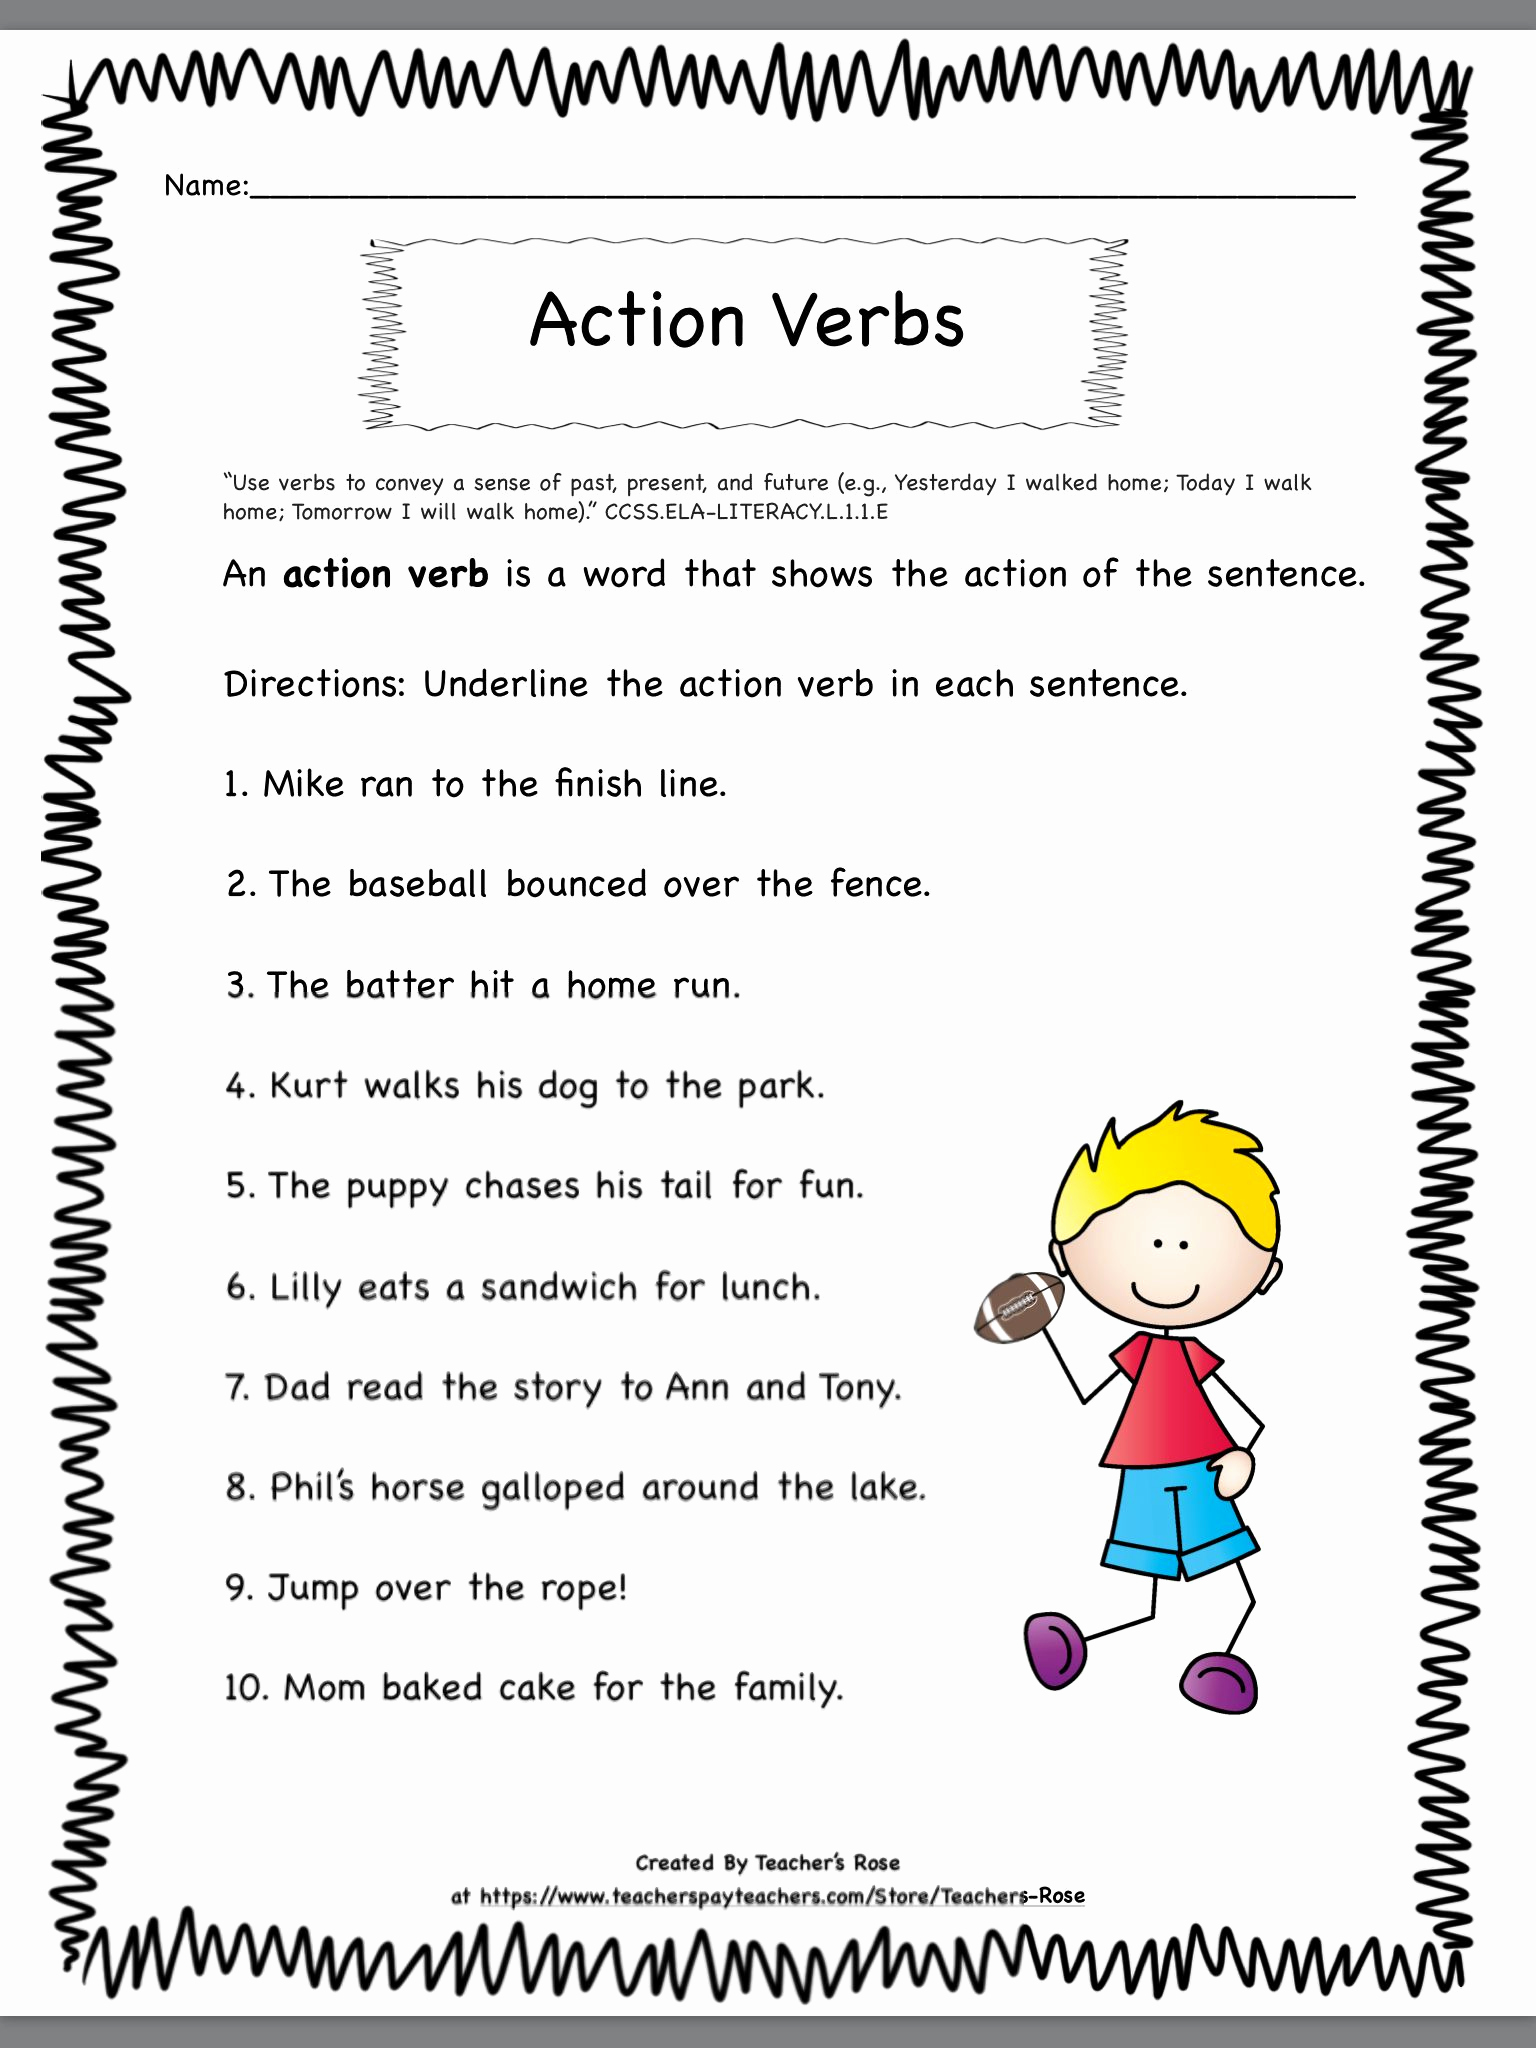 Verbs Worksheets First Grade Unique Verbs for First Grade